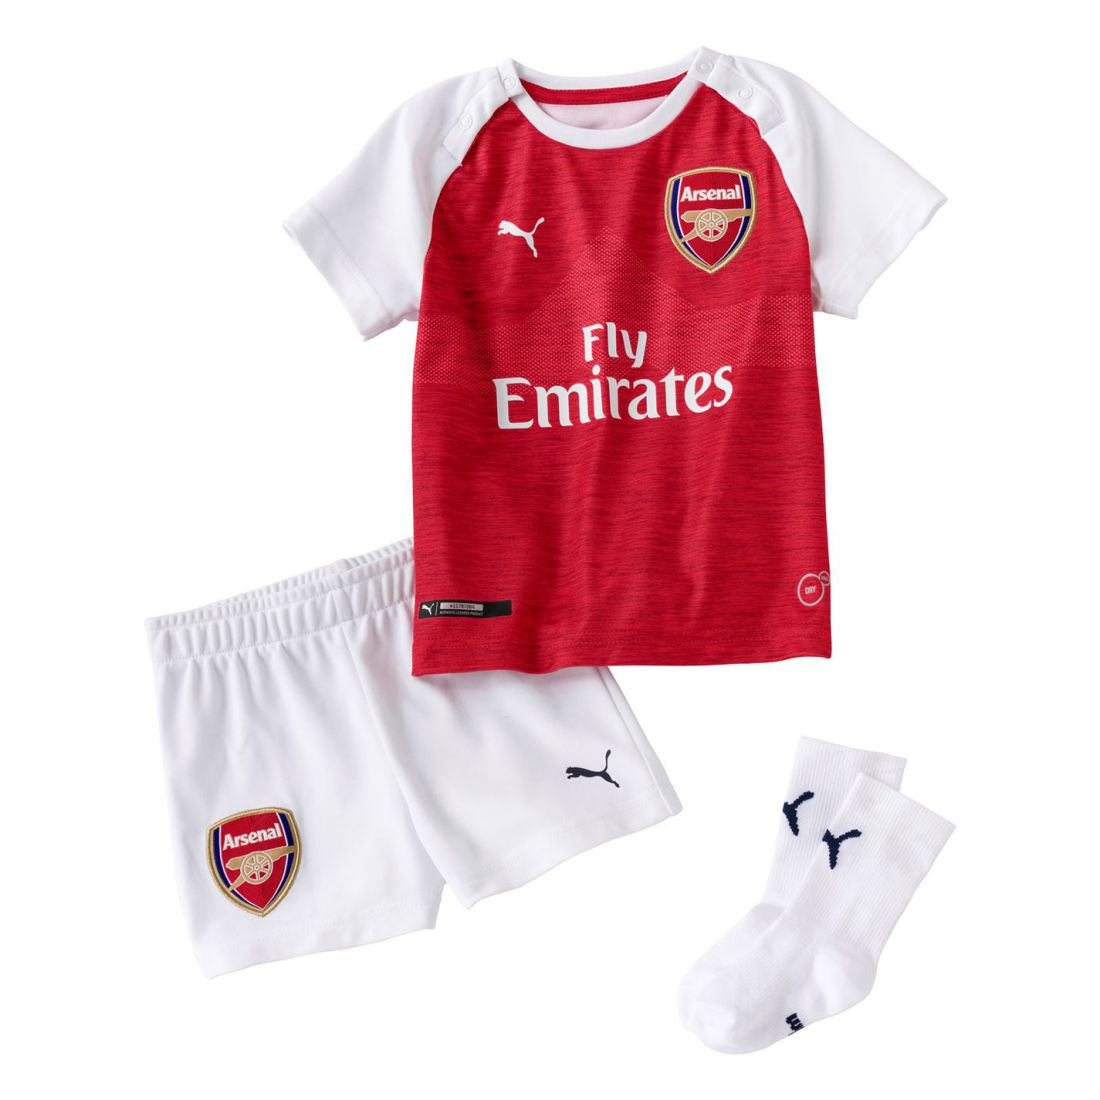 071f7a926 Puma Kids Boys Arsenal Home Baby kit 2018 2019 Domestic Minikits ...